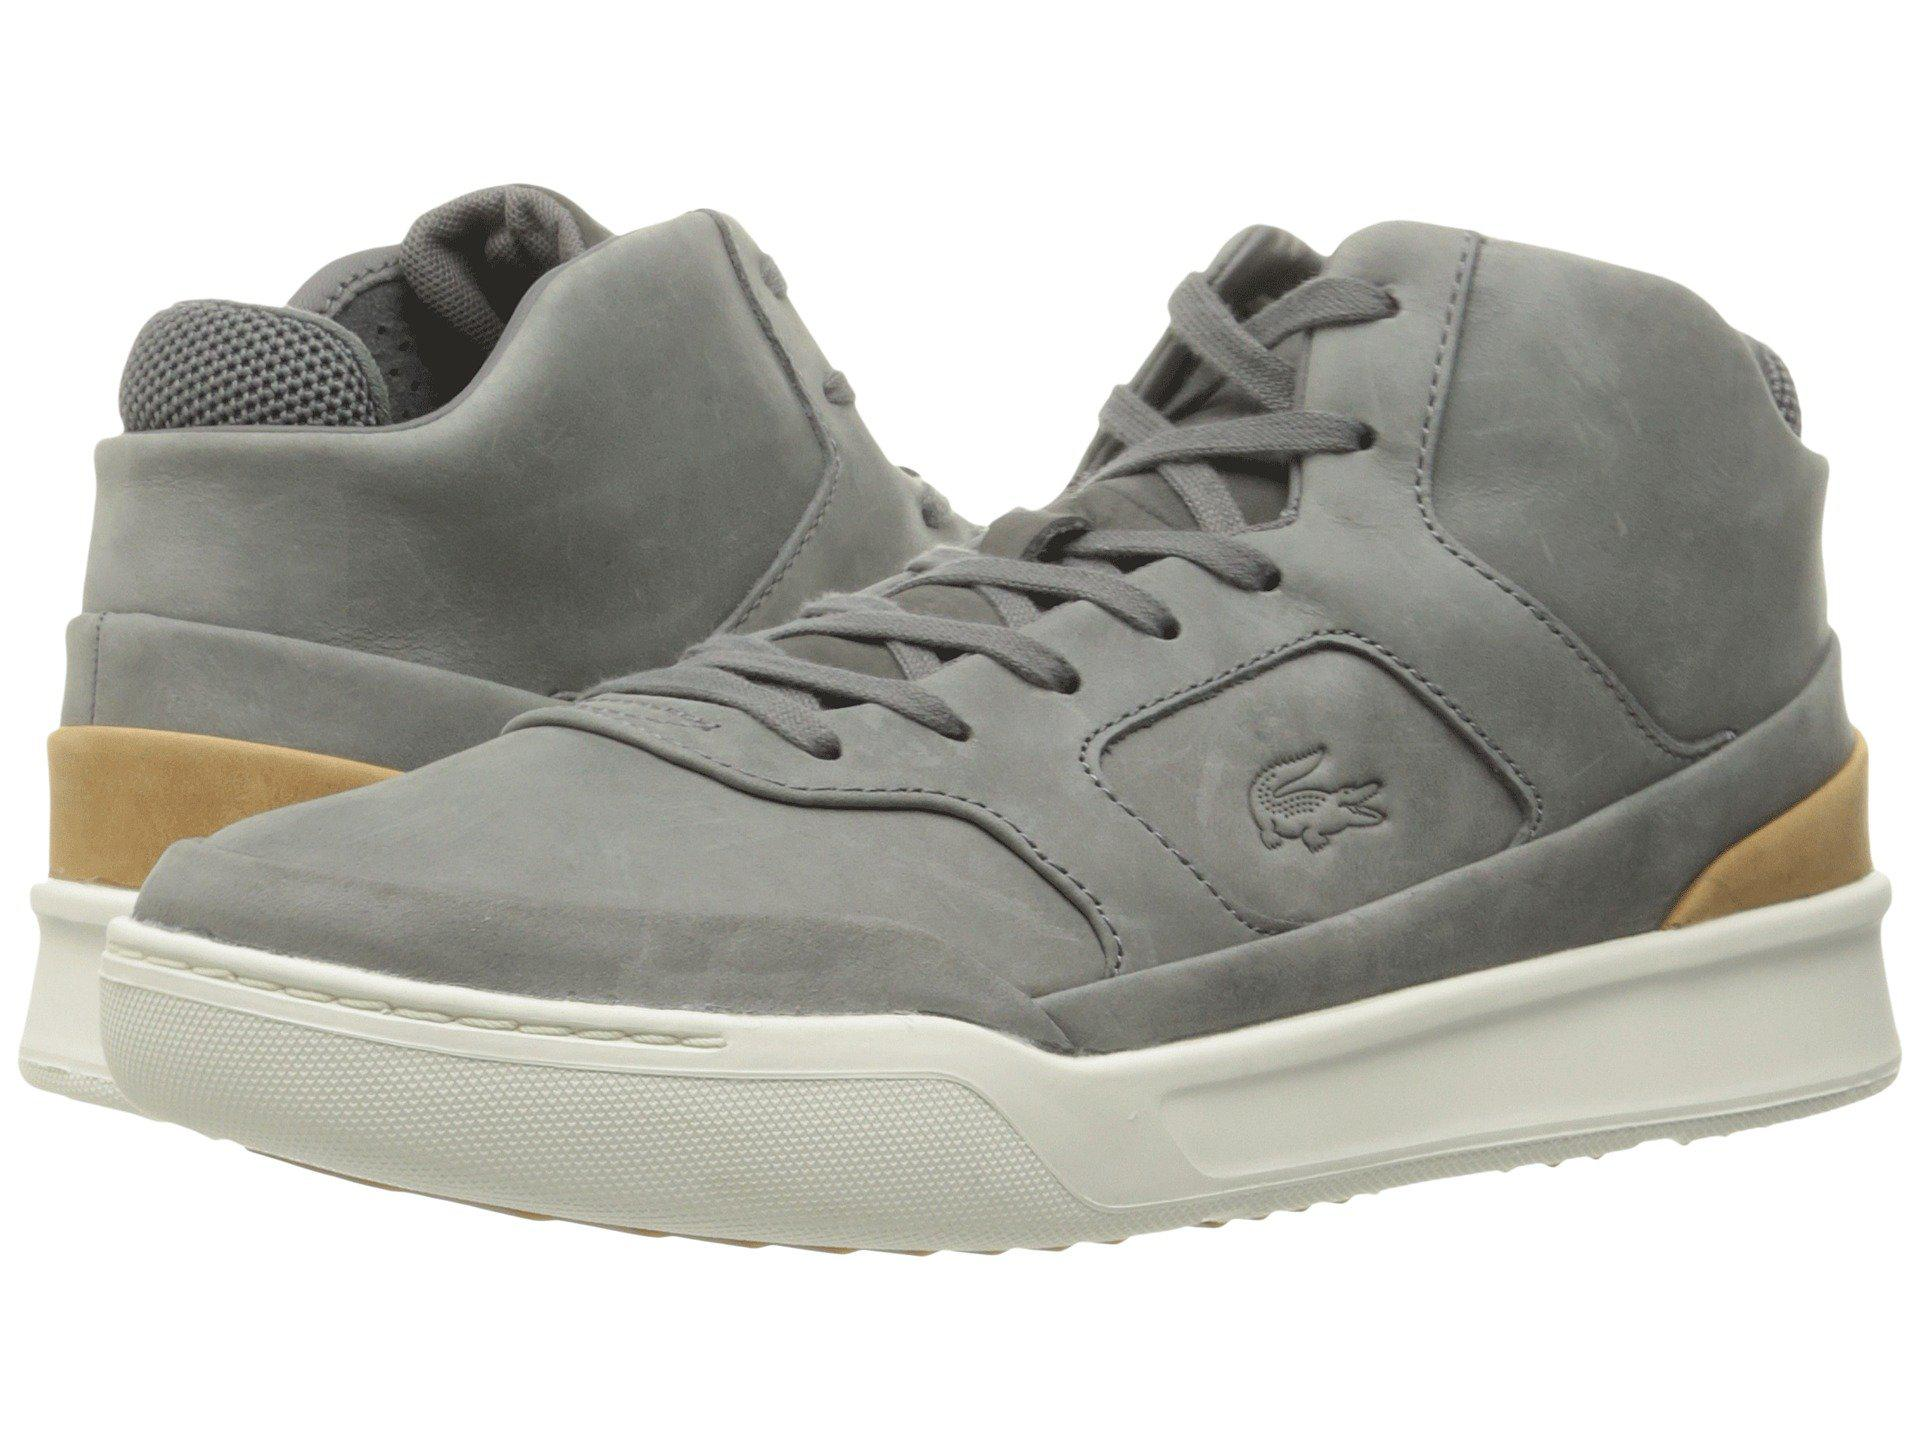 f7a5a1c98b7c Lyst - Lacoste Explorateur Mid 316 2 Cam Fashion Sneaker in Gray for ...